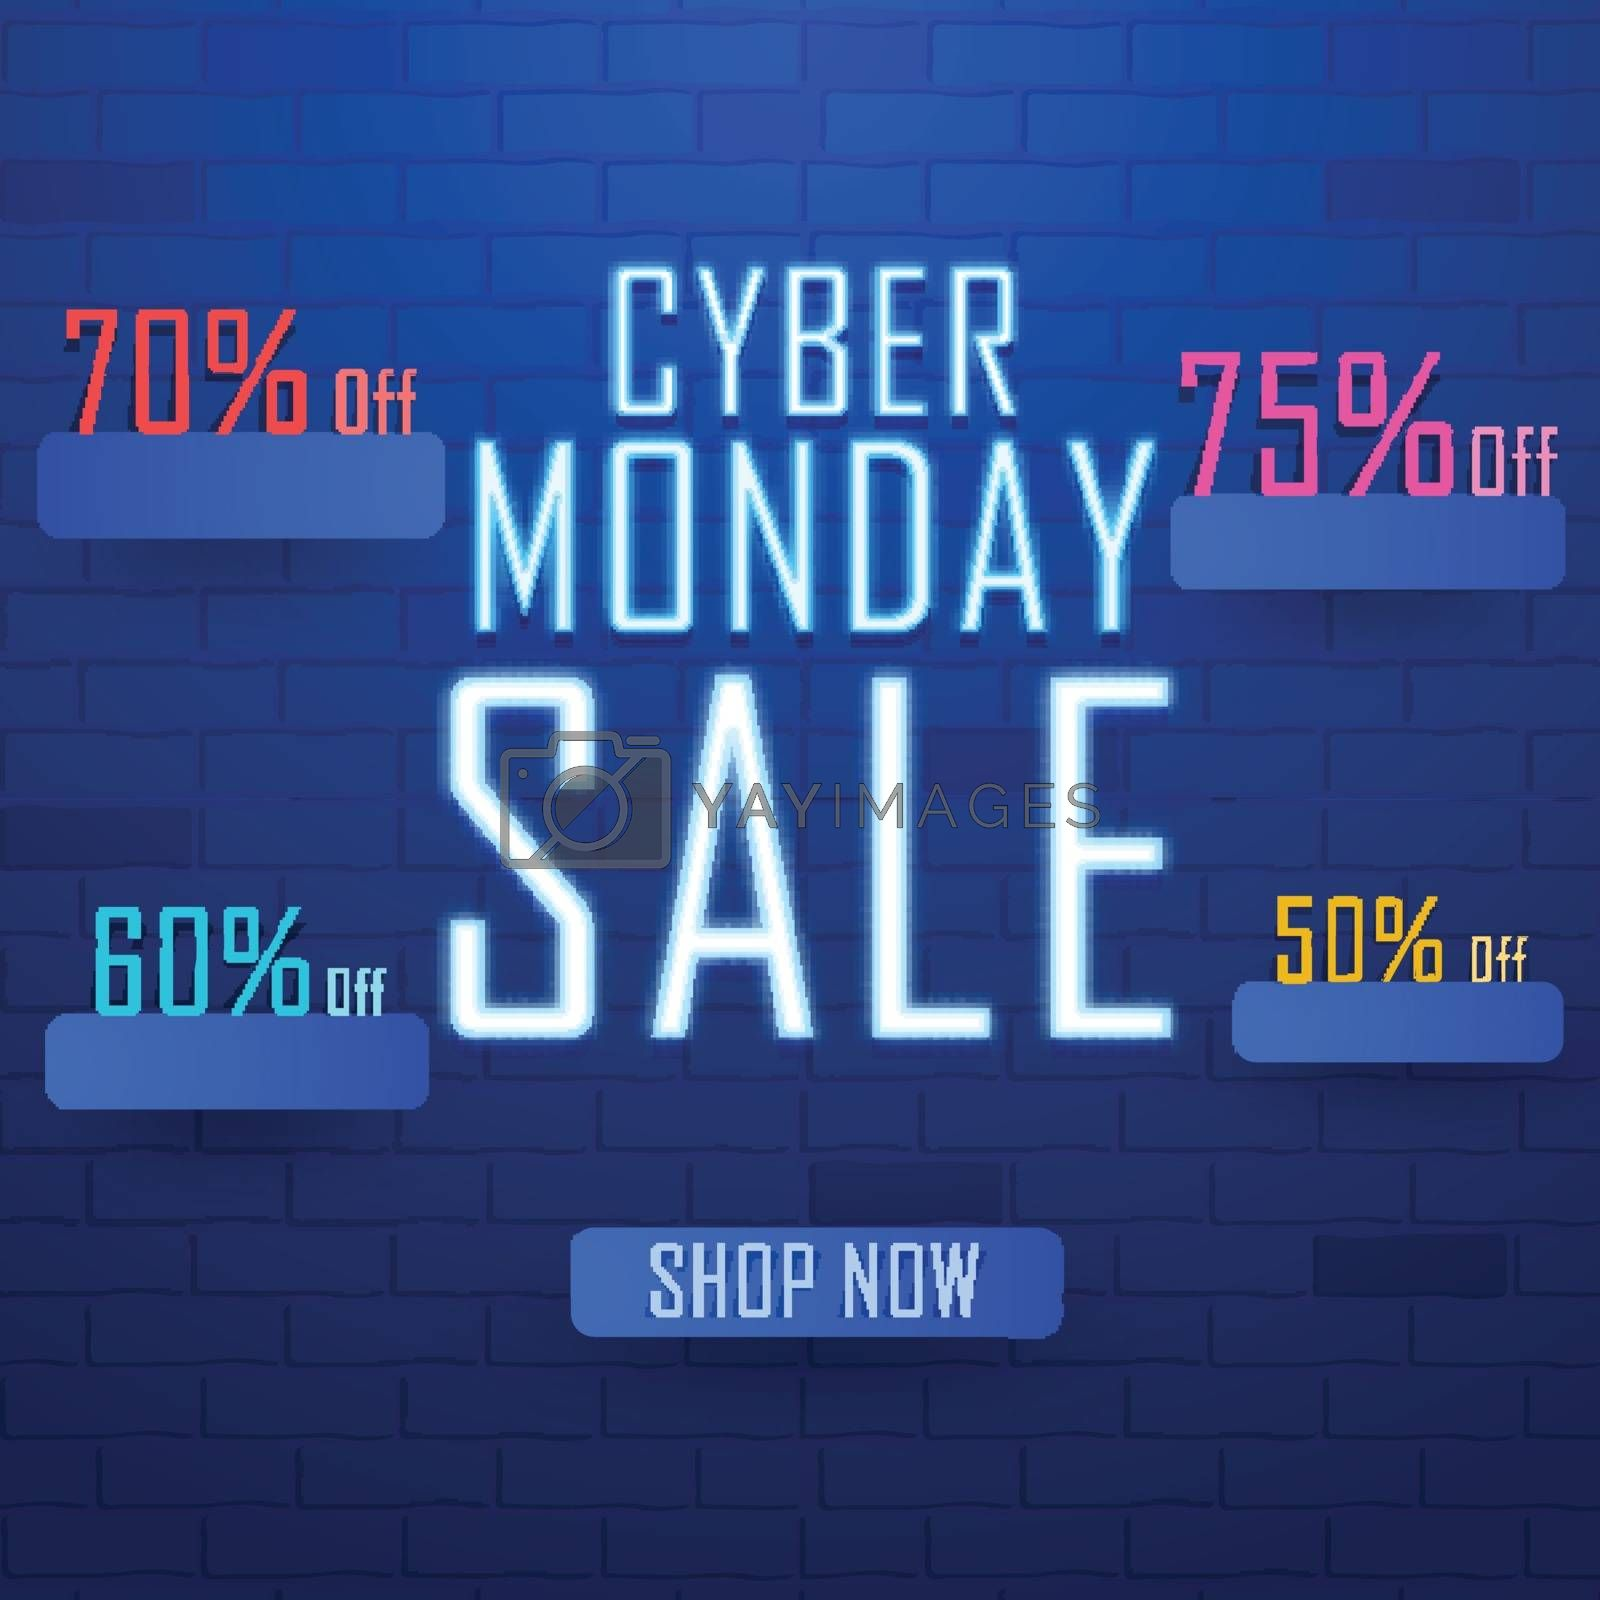 Neon text Cyber Monday Sale with different discount offers on shiny blue brick wall. Advertising concept based design.